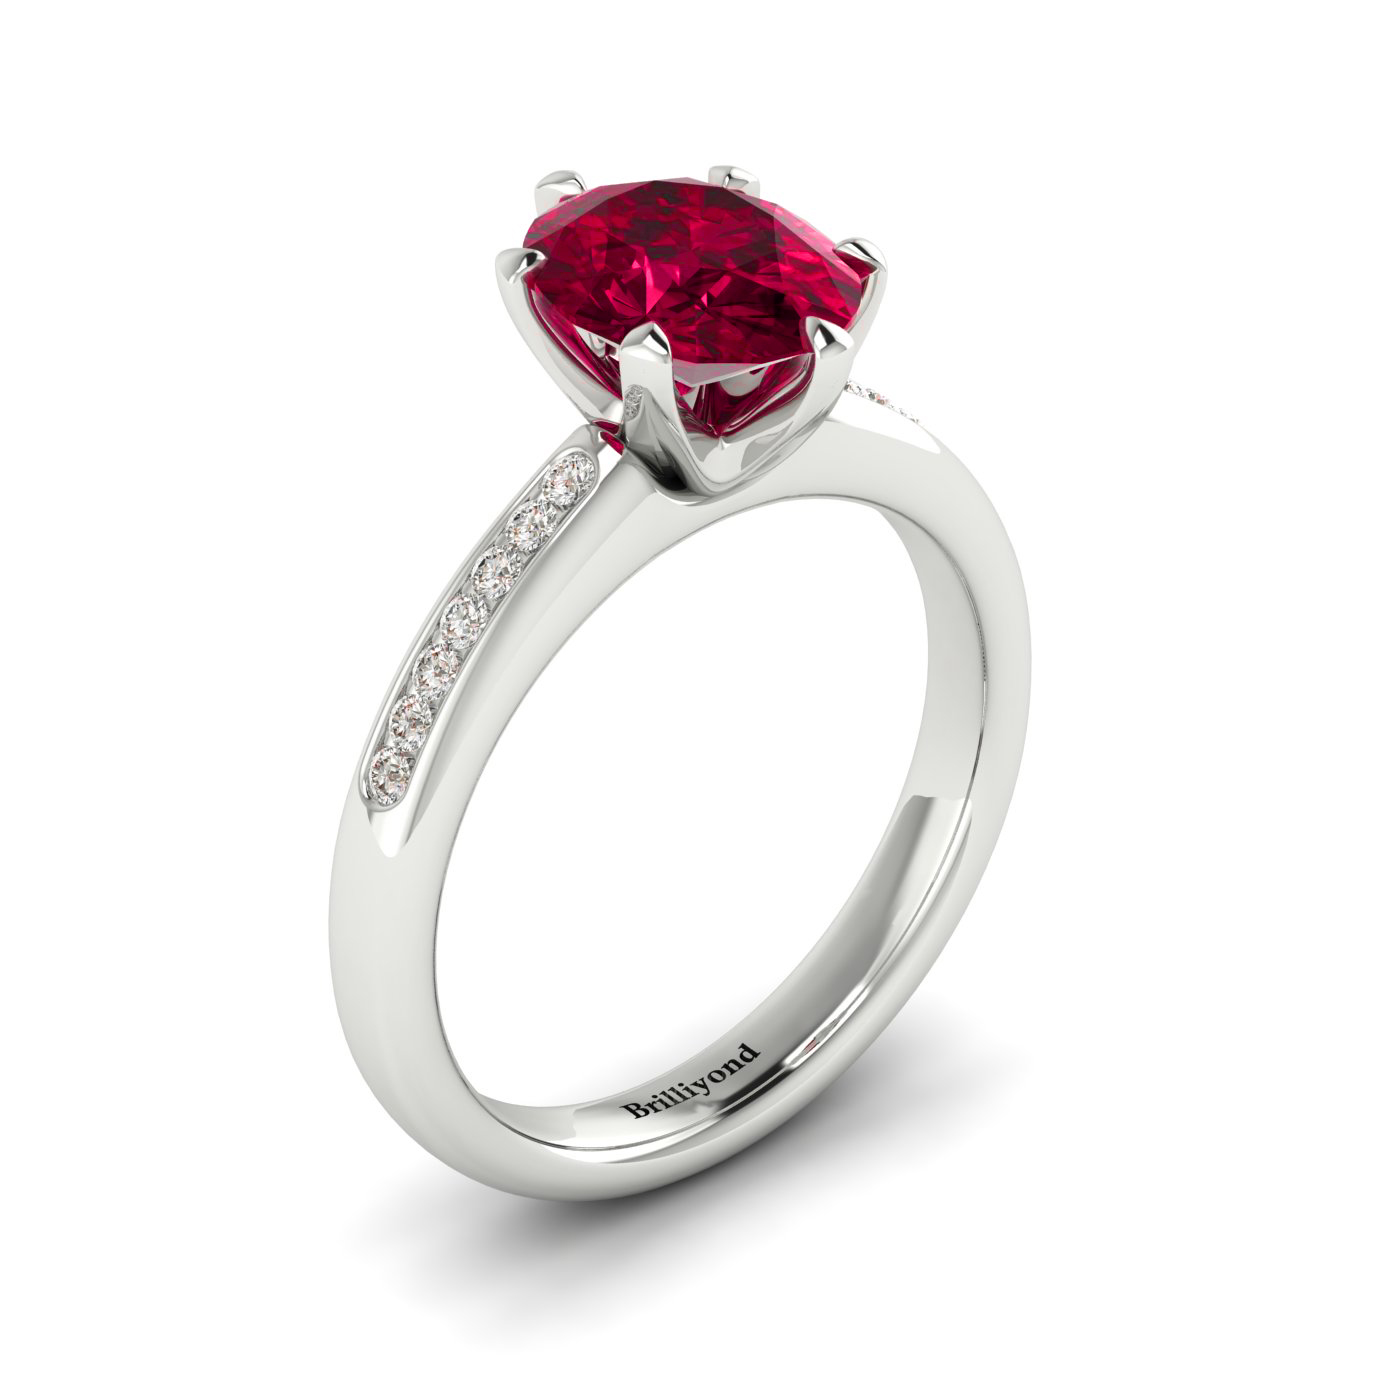 Brilliyond Ruby Oval Engagement Ring Nymph in a White Gold Setting